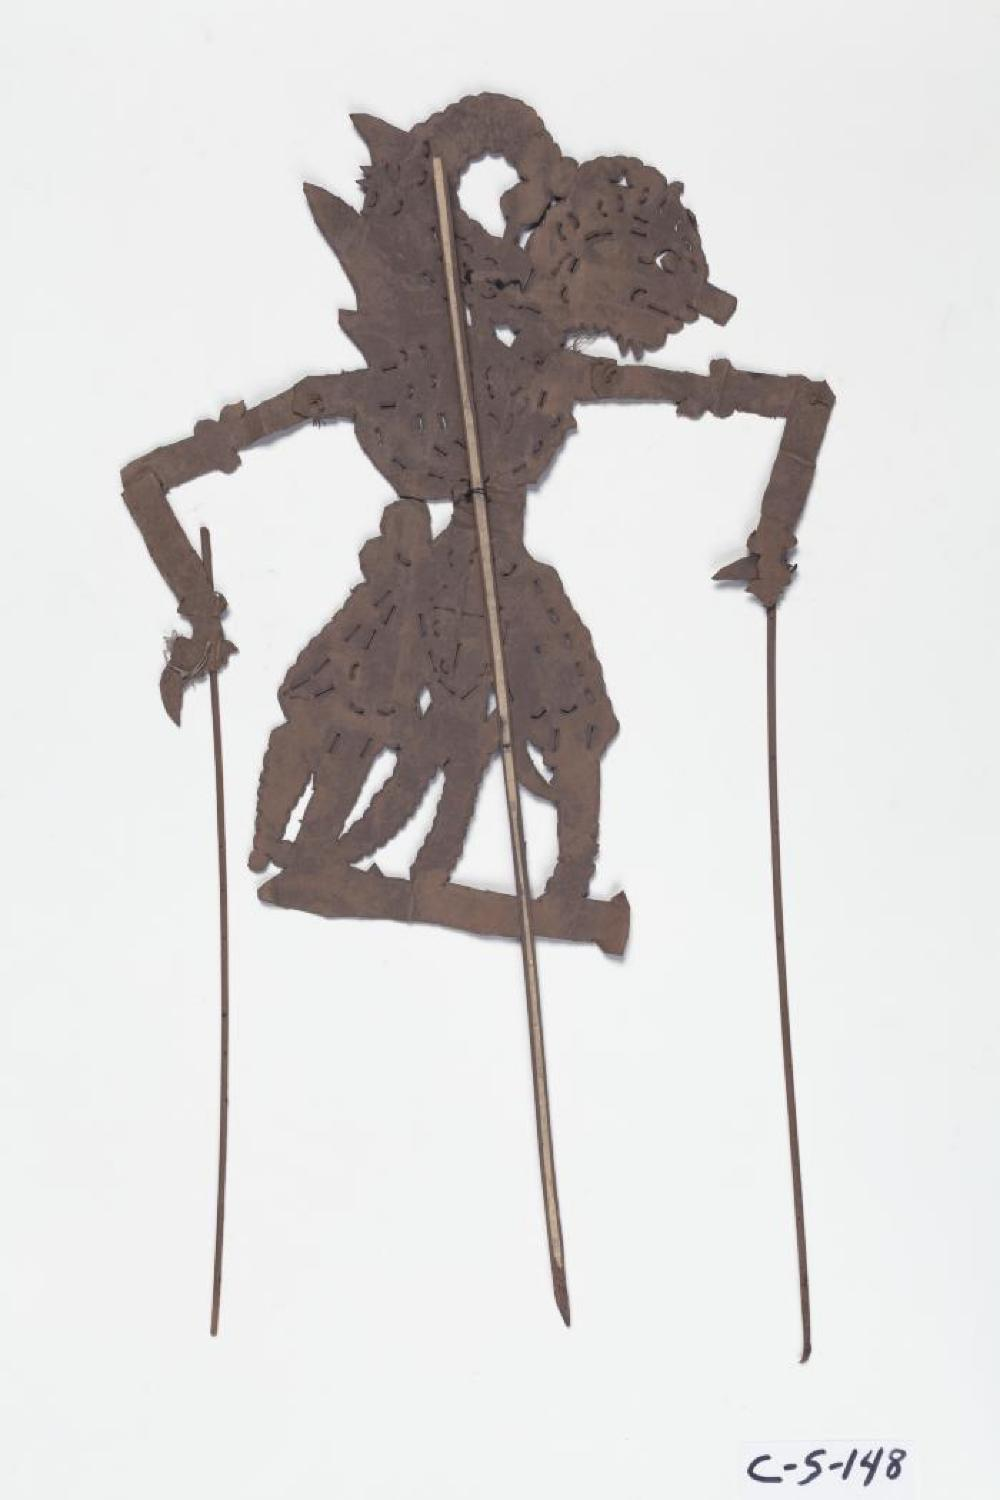 Javanese; Wayang Kulit Shadow Puppet (Gatotkaca); 20th century; Paper, wood; 15 7/8 x 4 7/8 x 1/8 in.; Collection of Isamu Noguchi. (Study Collection; Collectibles, C-S-148)